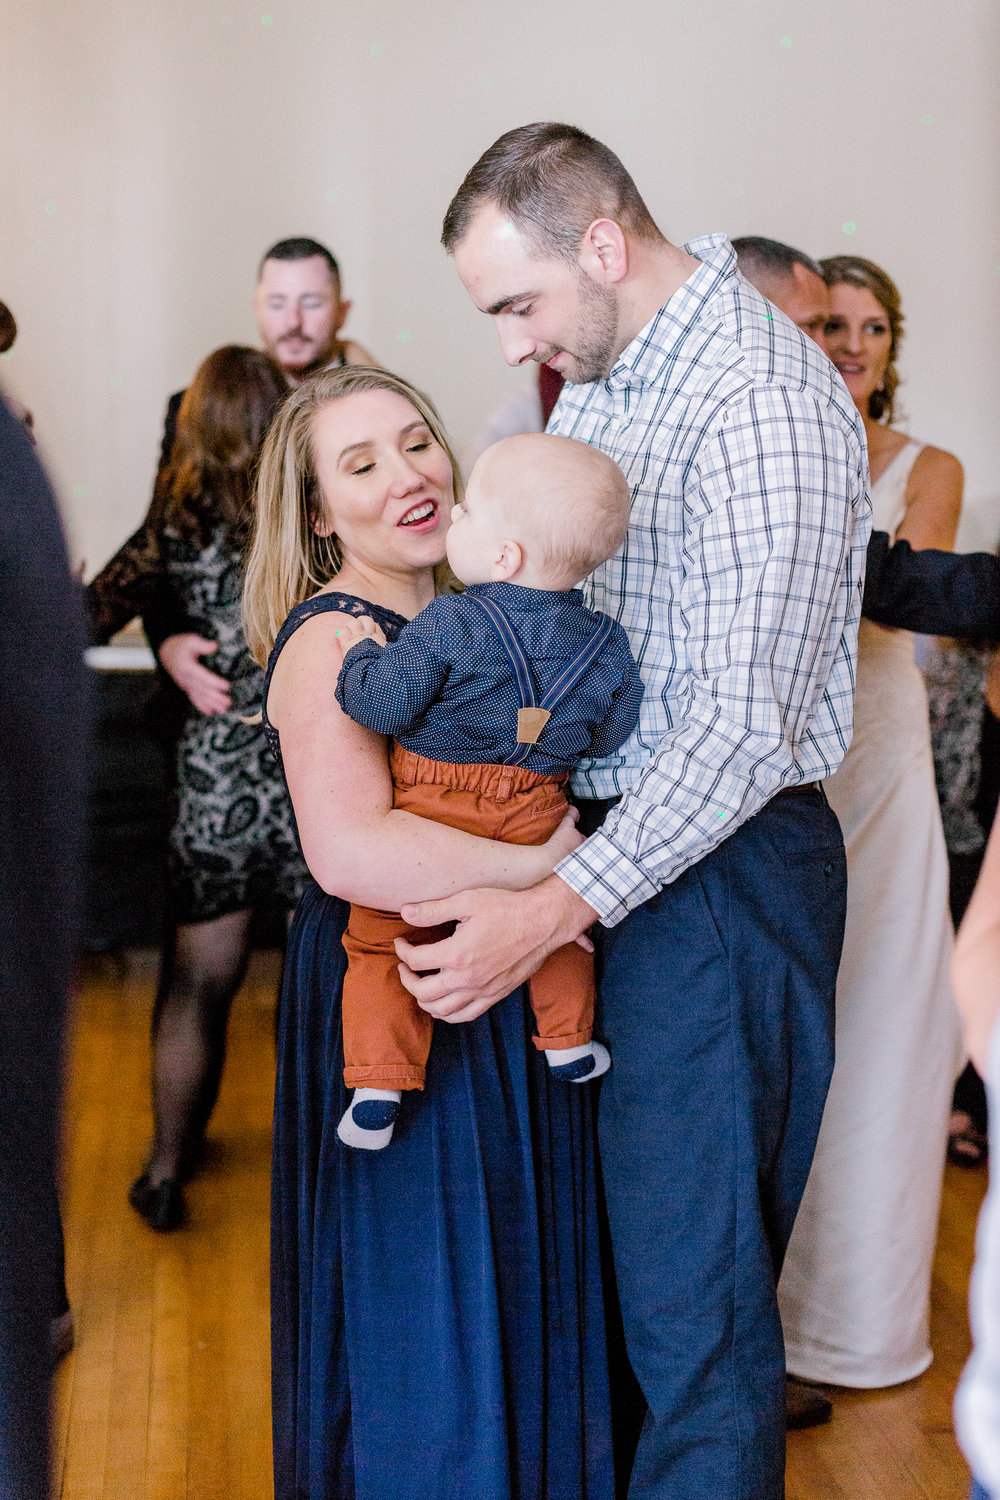 Pennsylvania October Fall Lehigh Valley wedding and lifestyle photographer Lytle Photo Co (142 of 167).jpg